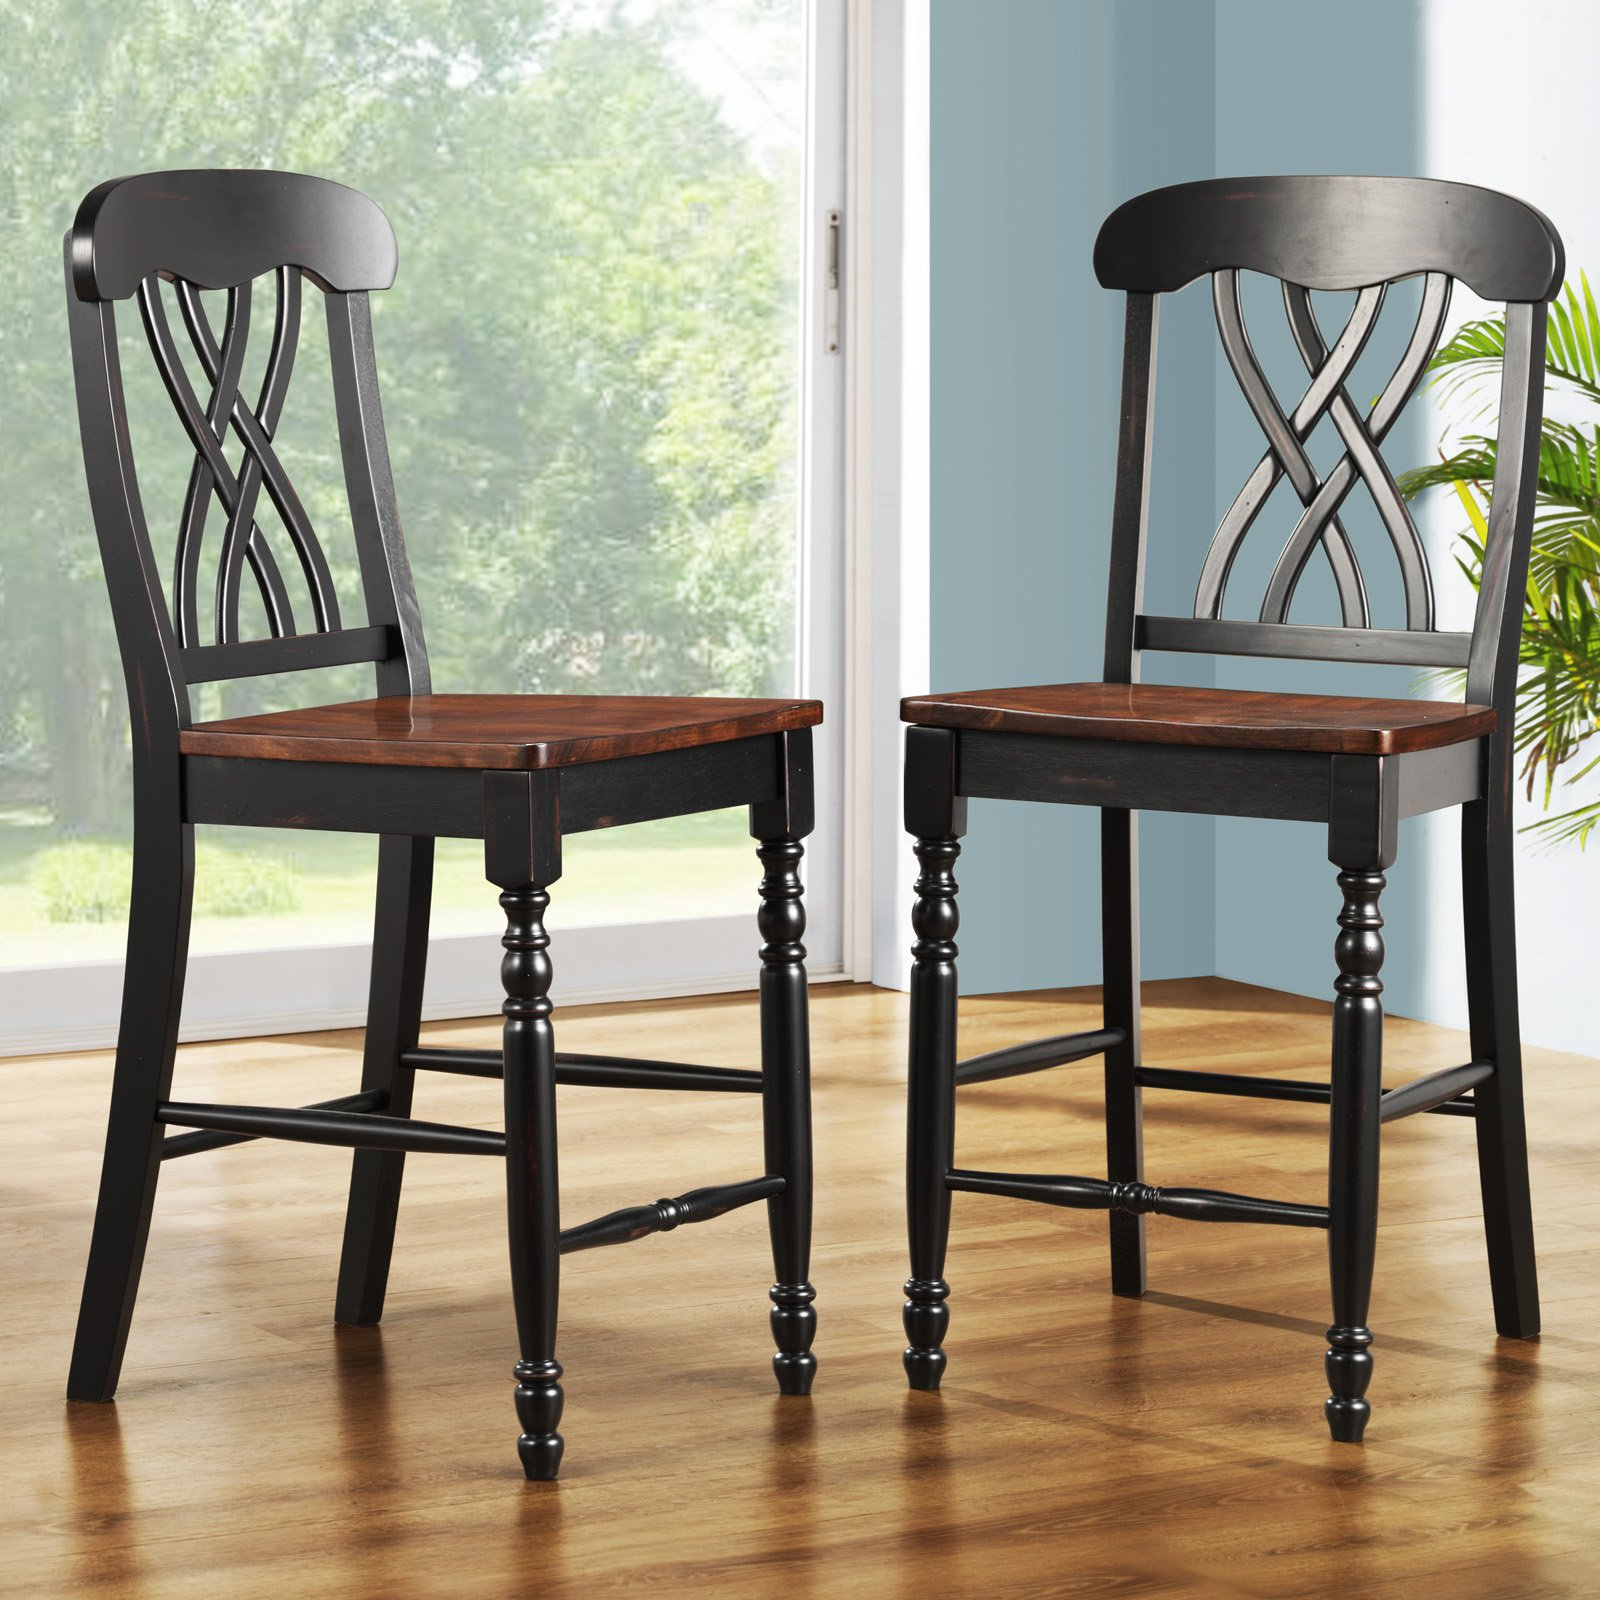 Weston Home Ohana Counter Height Chair Black & Oak Set of 2 by Top-Line dba Homelegance